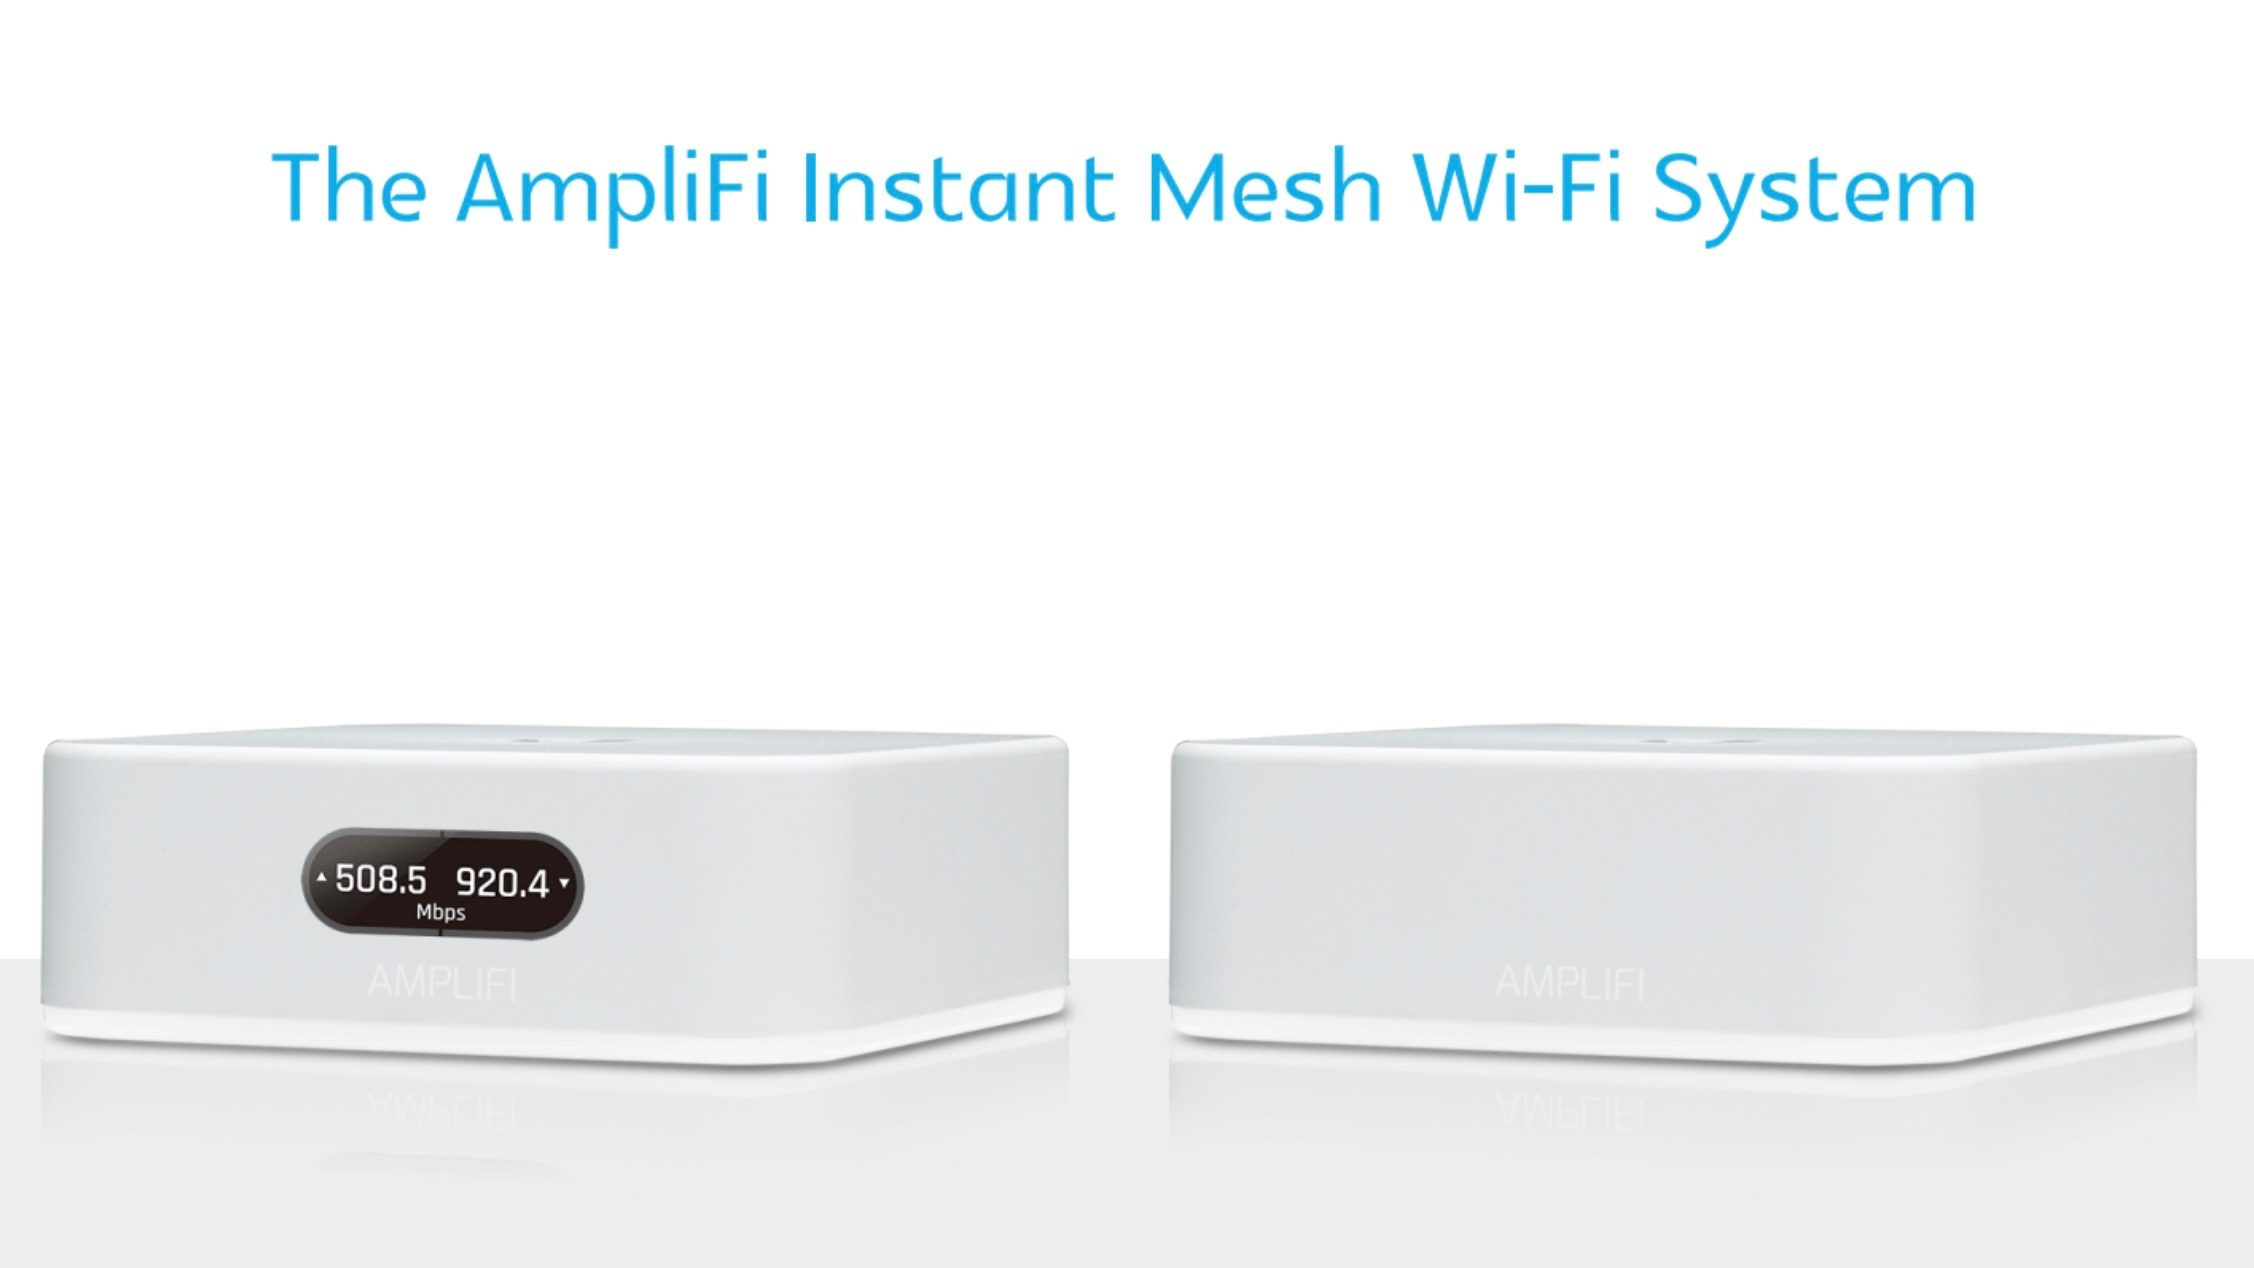 Ubiquiti releases new AmpliFi Instant Mesh Wi-Fi System, sets up in under 2 minutes